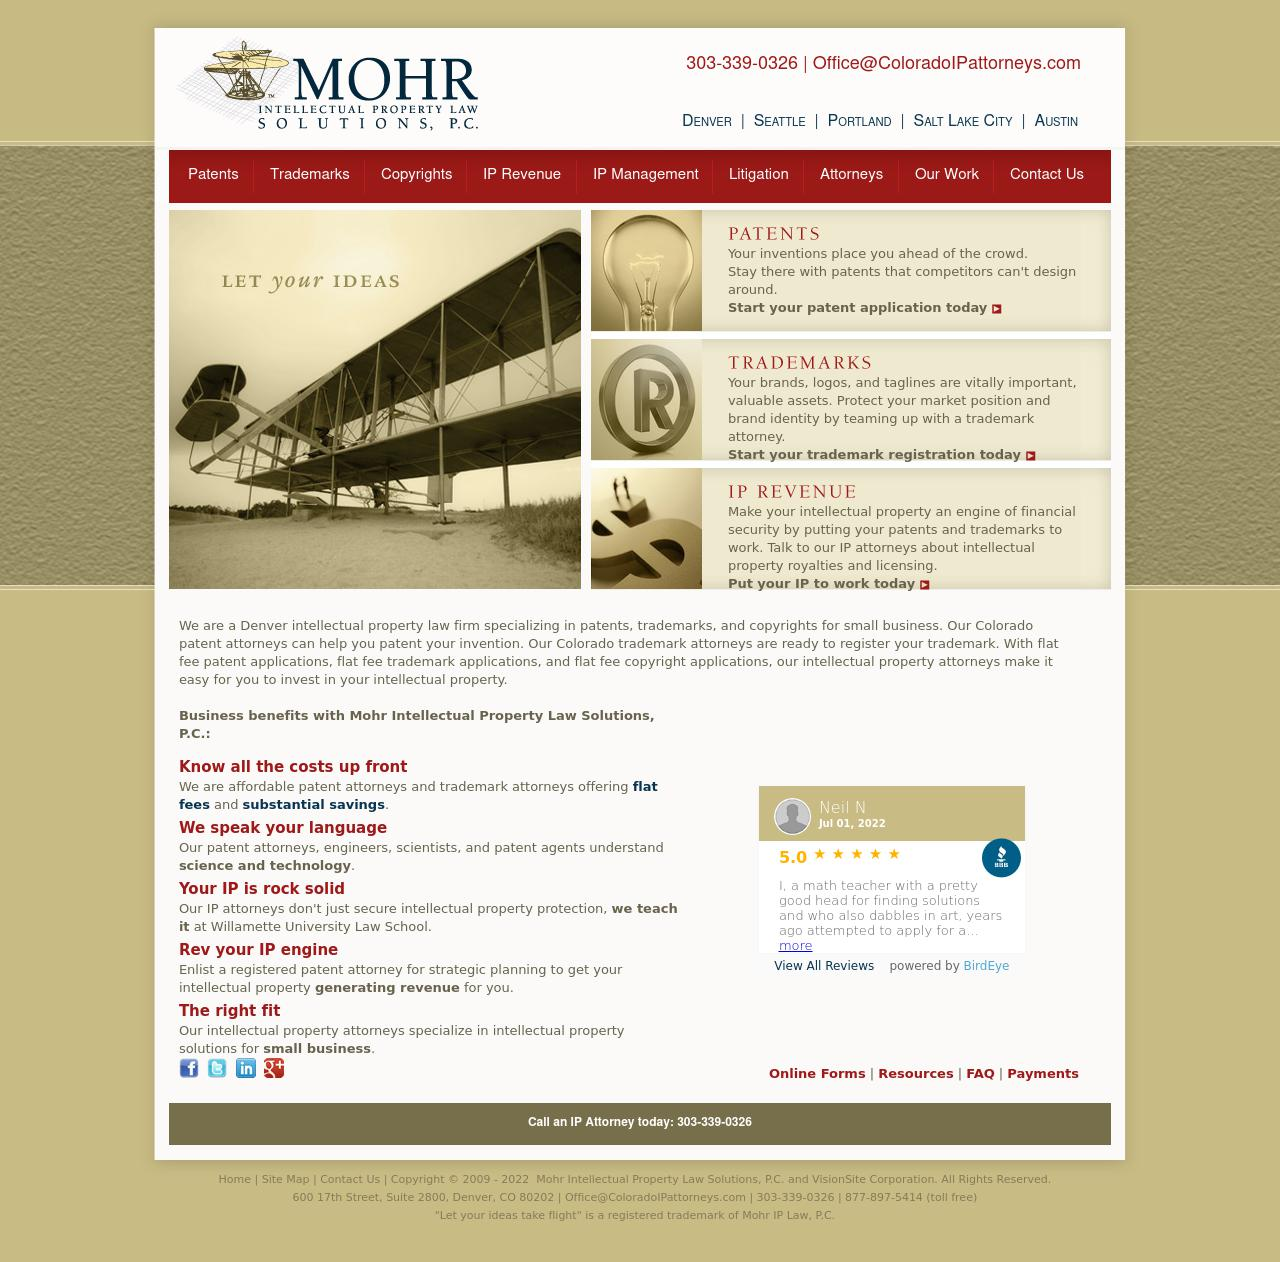 Mohr Intellectual Property Law Solutions, P.C. - Denver CO Lawyers